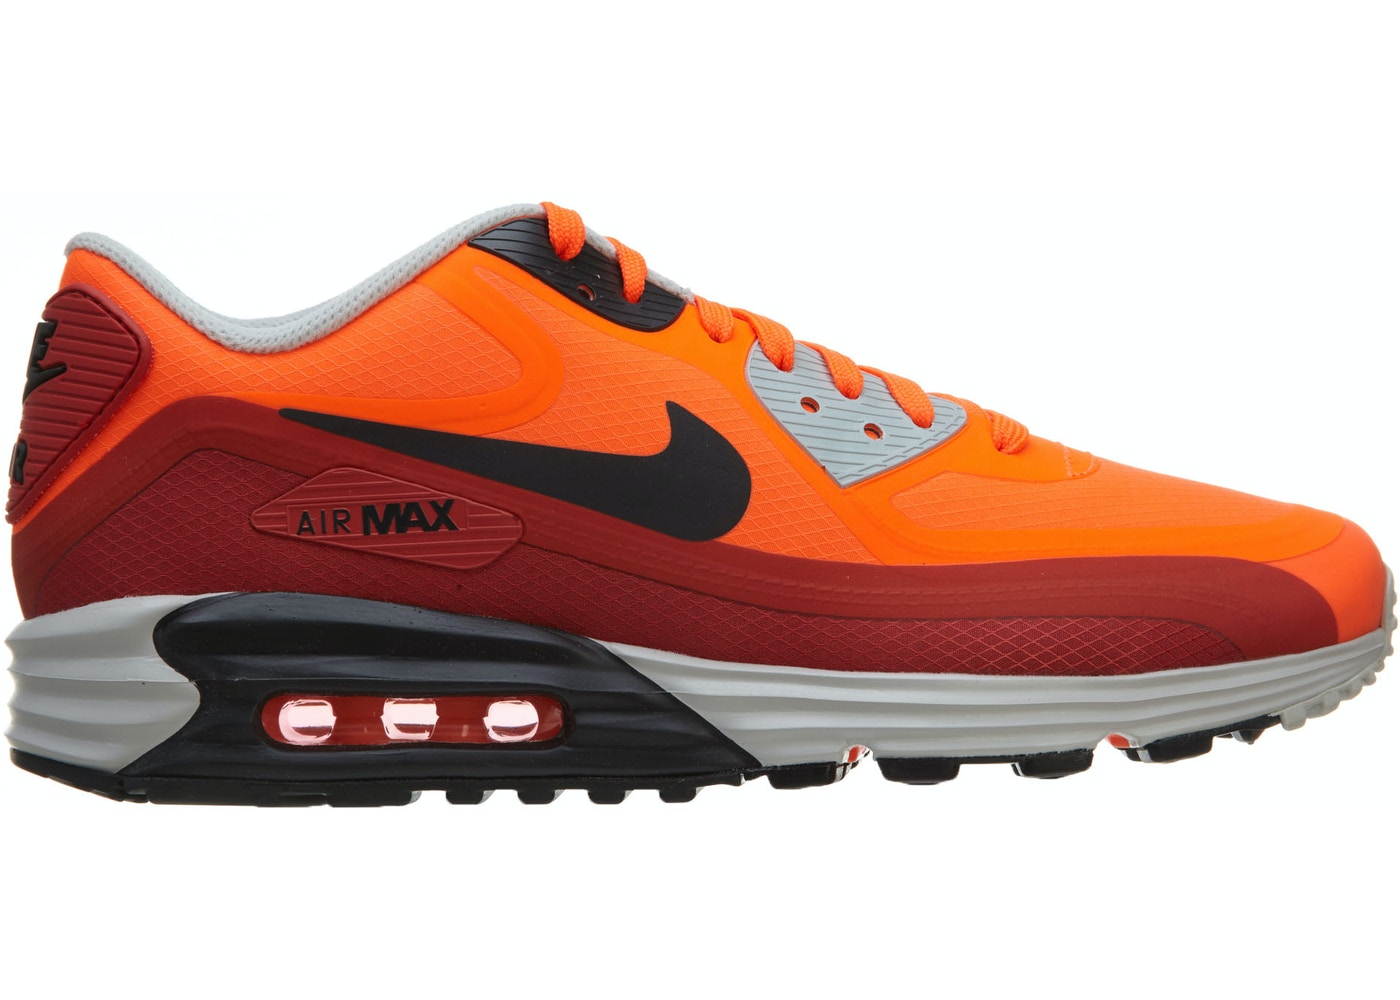 inicial Banquete Destreza  Nike Air Max Lunar90 Wr Hyper Crimson Dark Ash-Red Clay - 654471-800